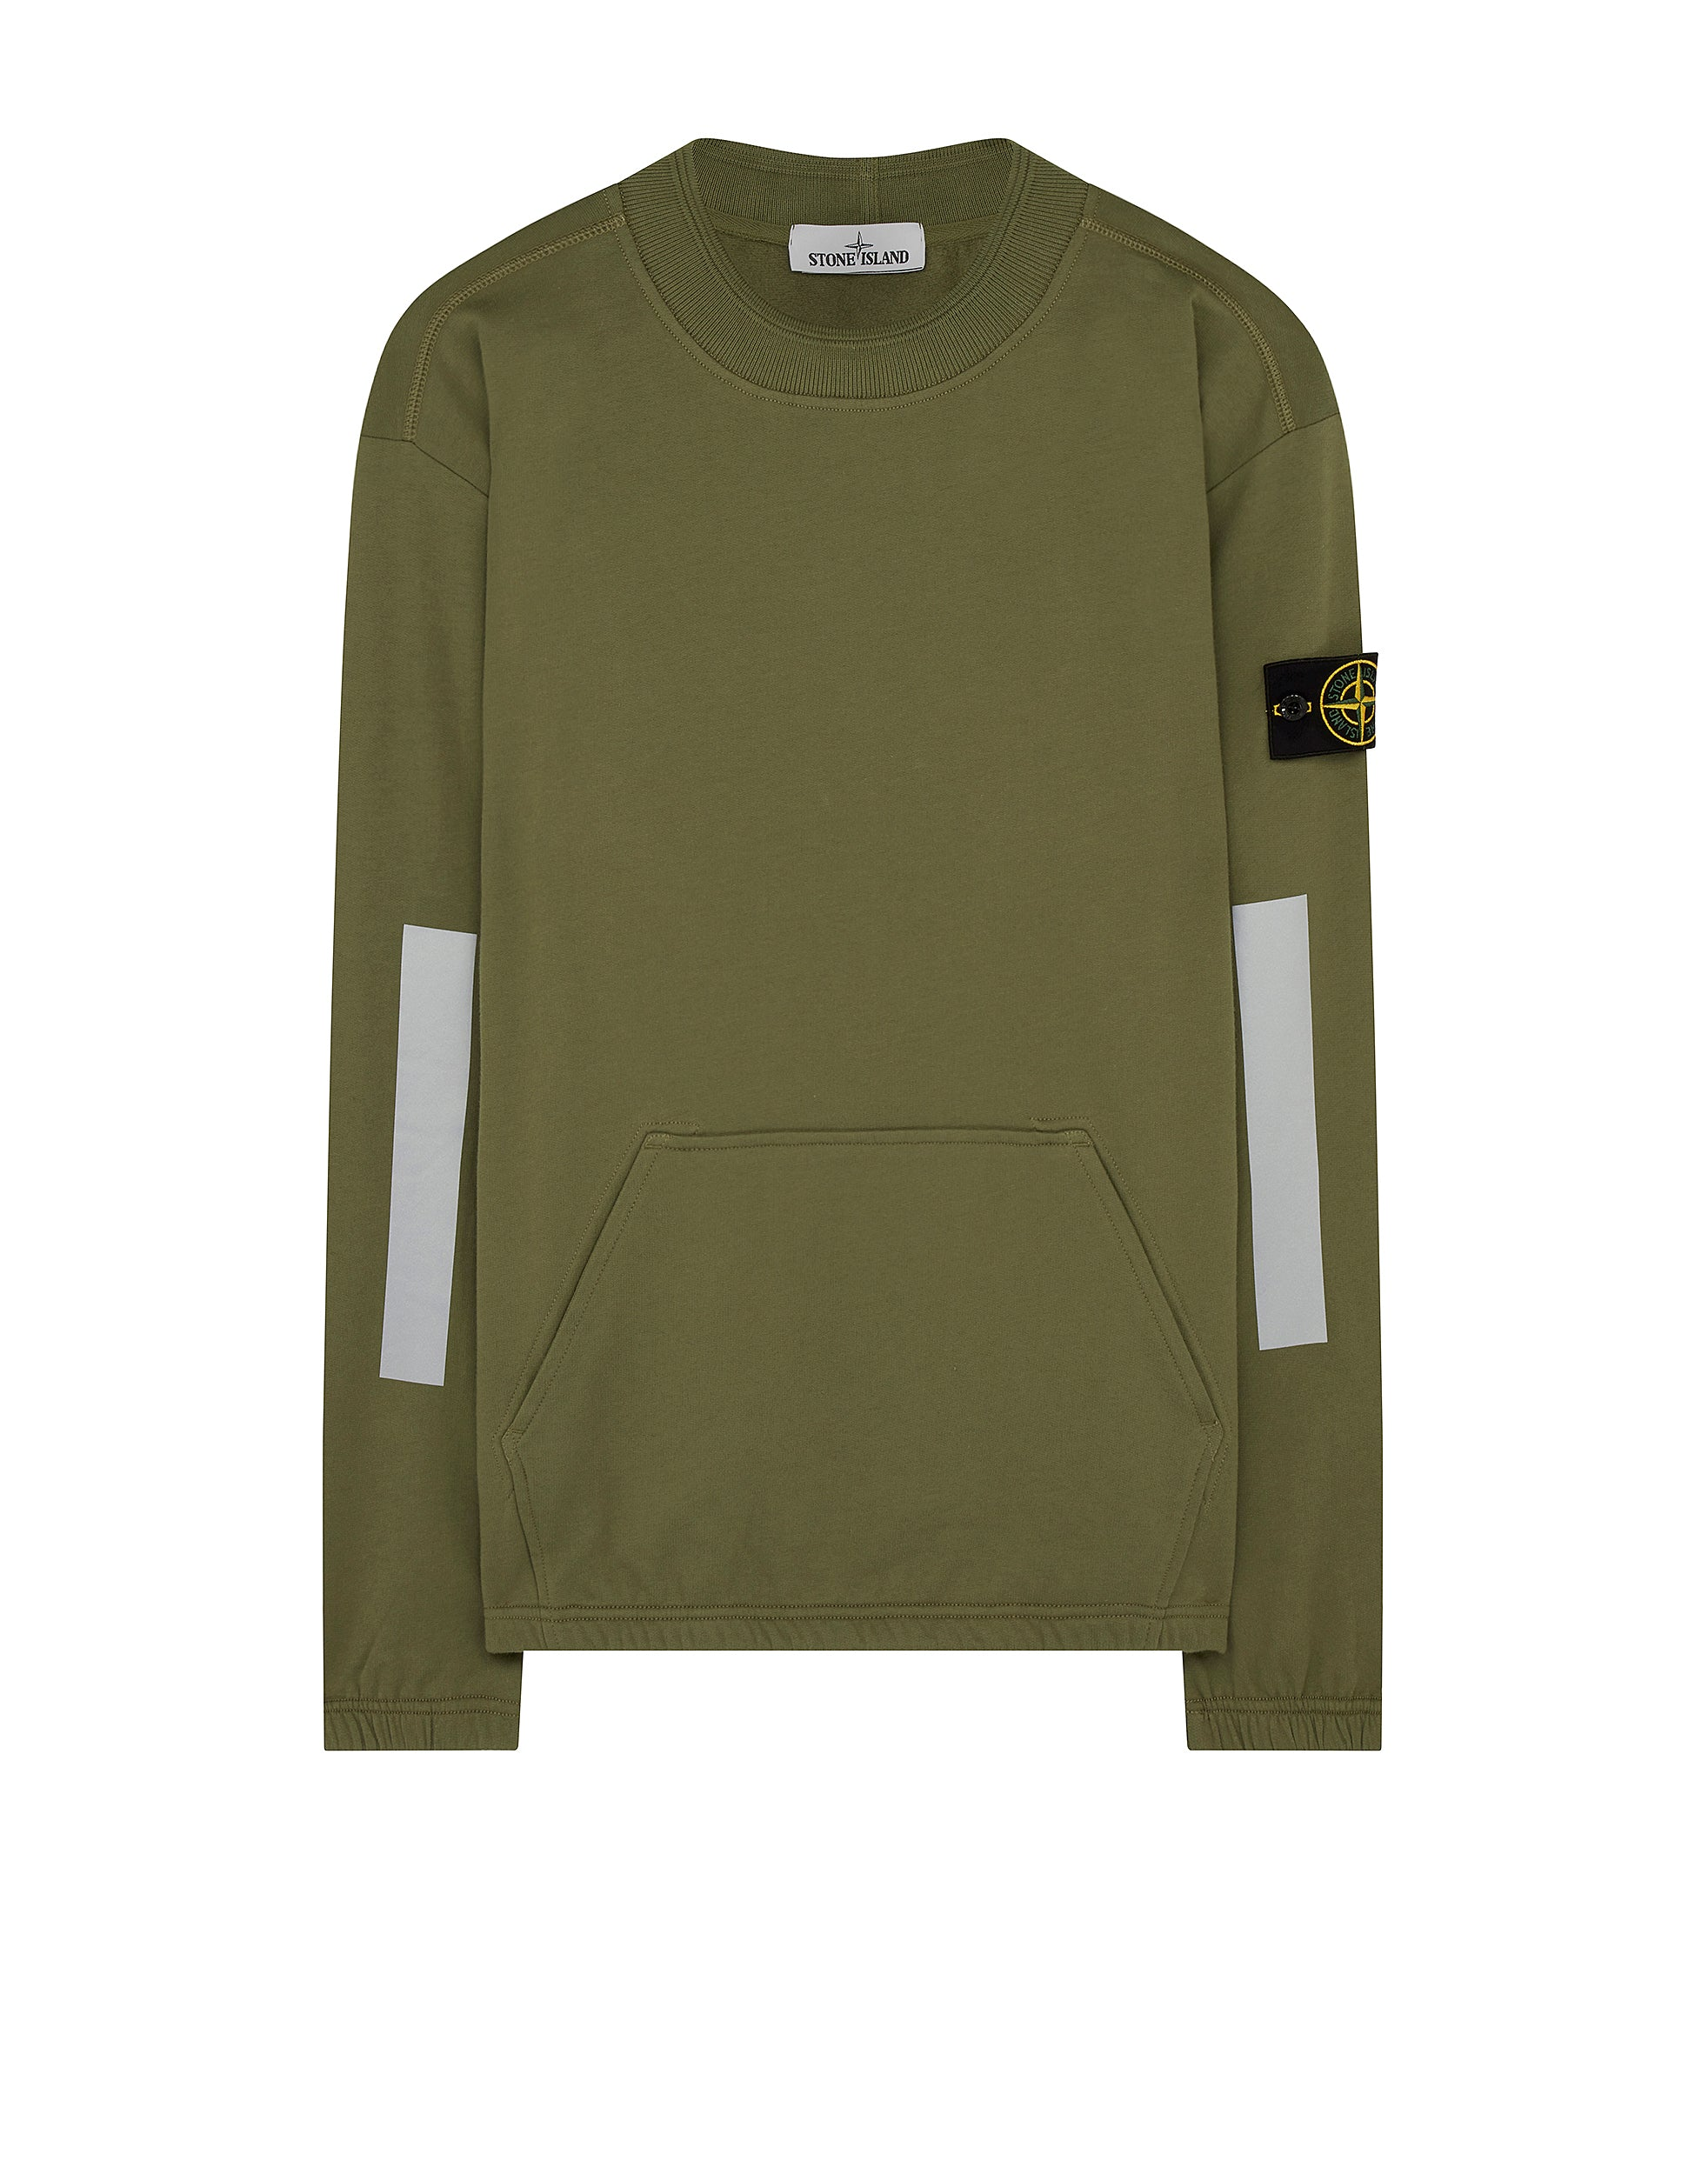 60643 Sweatshirt in Olive